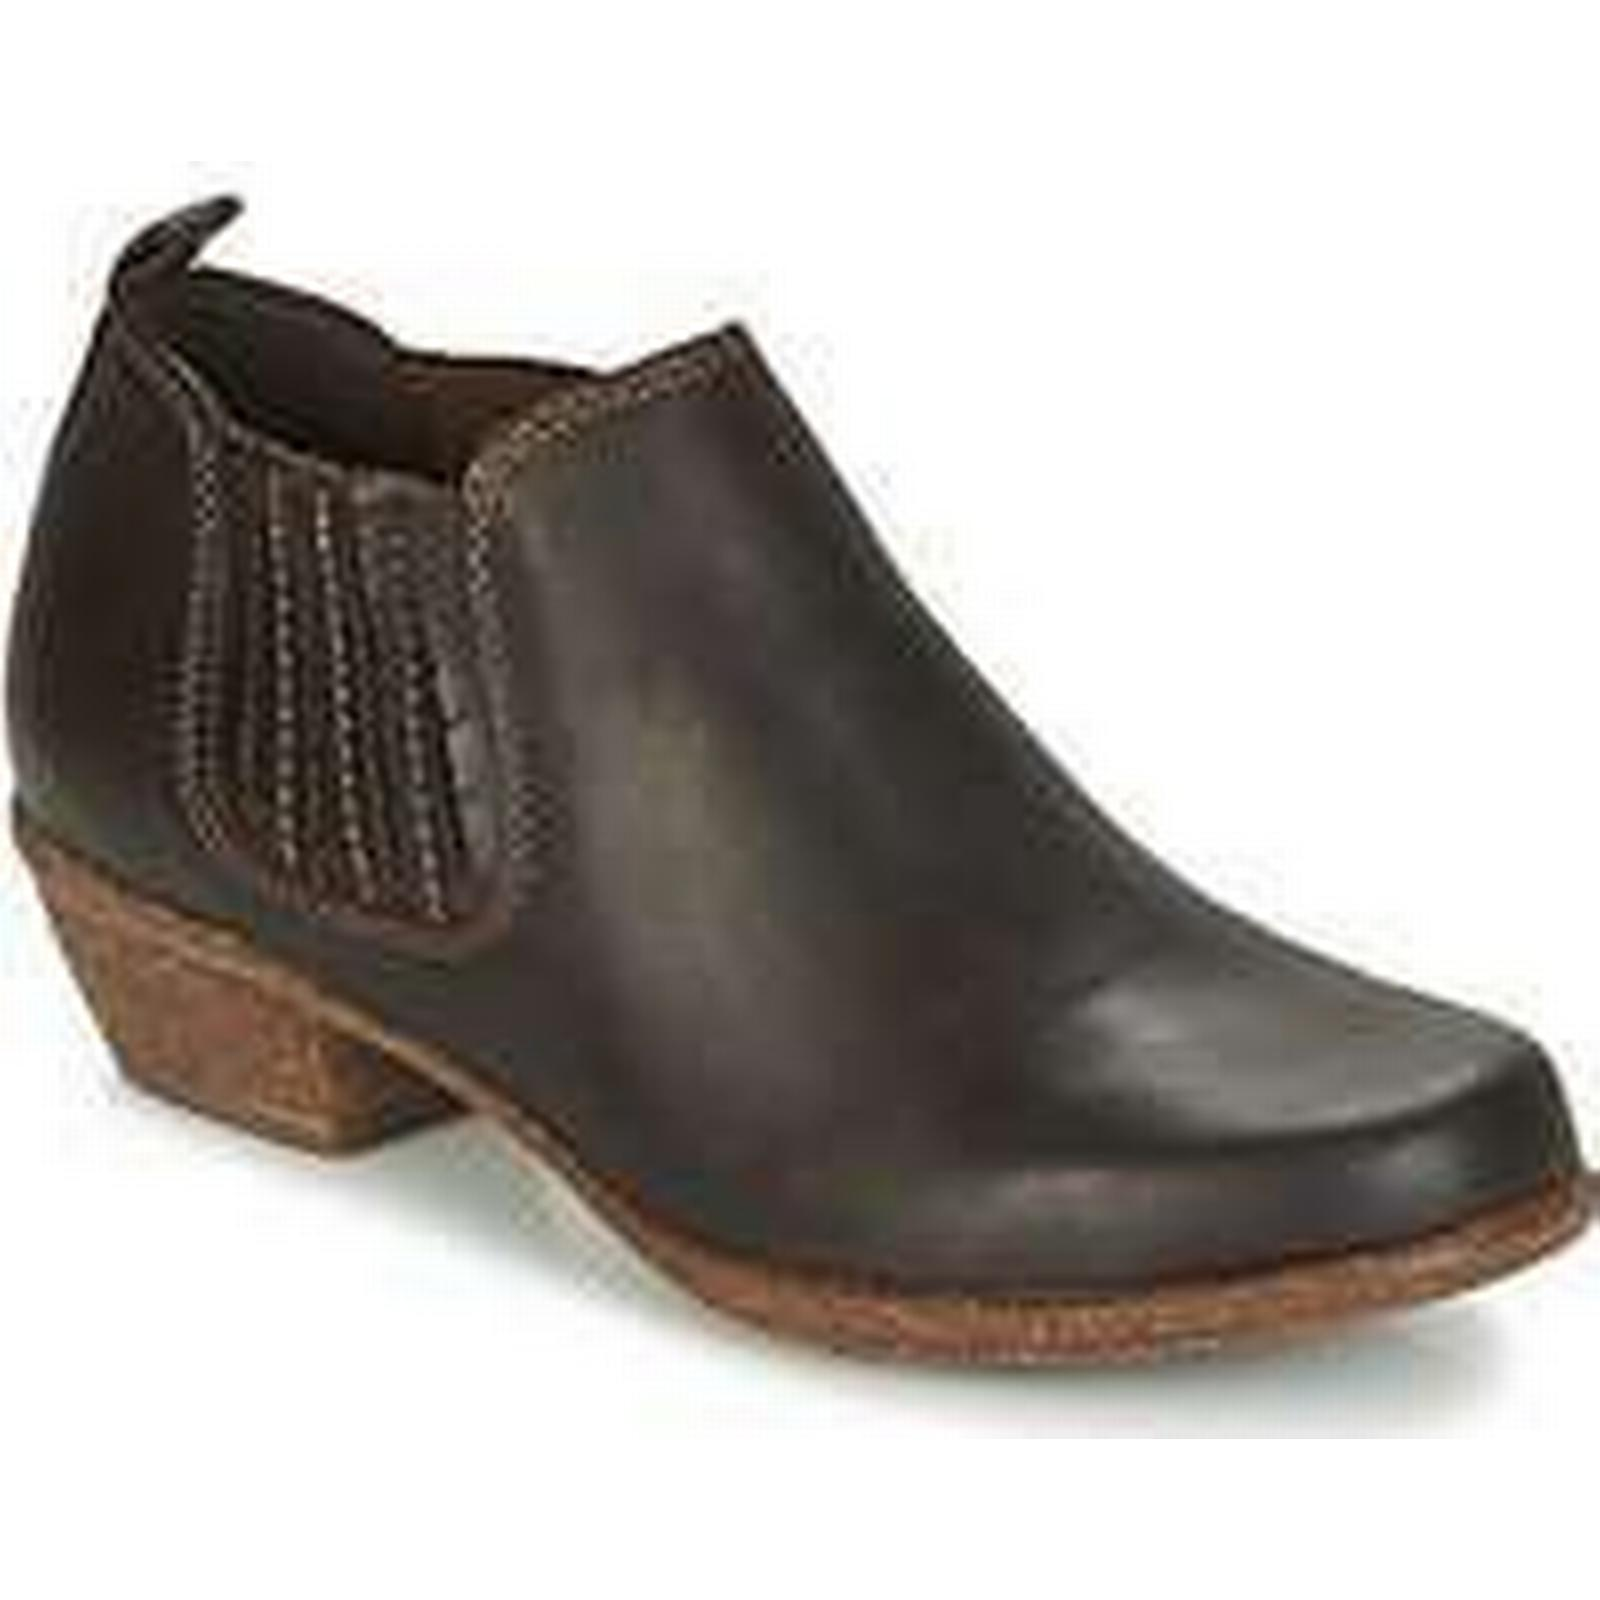 Spartoo.co.uk Mid Clarks WILROSE JADE women's Mid Spartoo.co.uk Boots in Brown 05d829